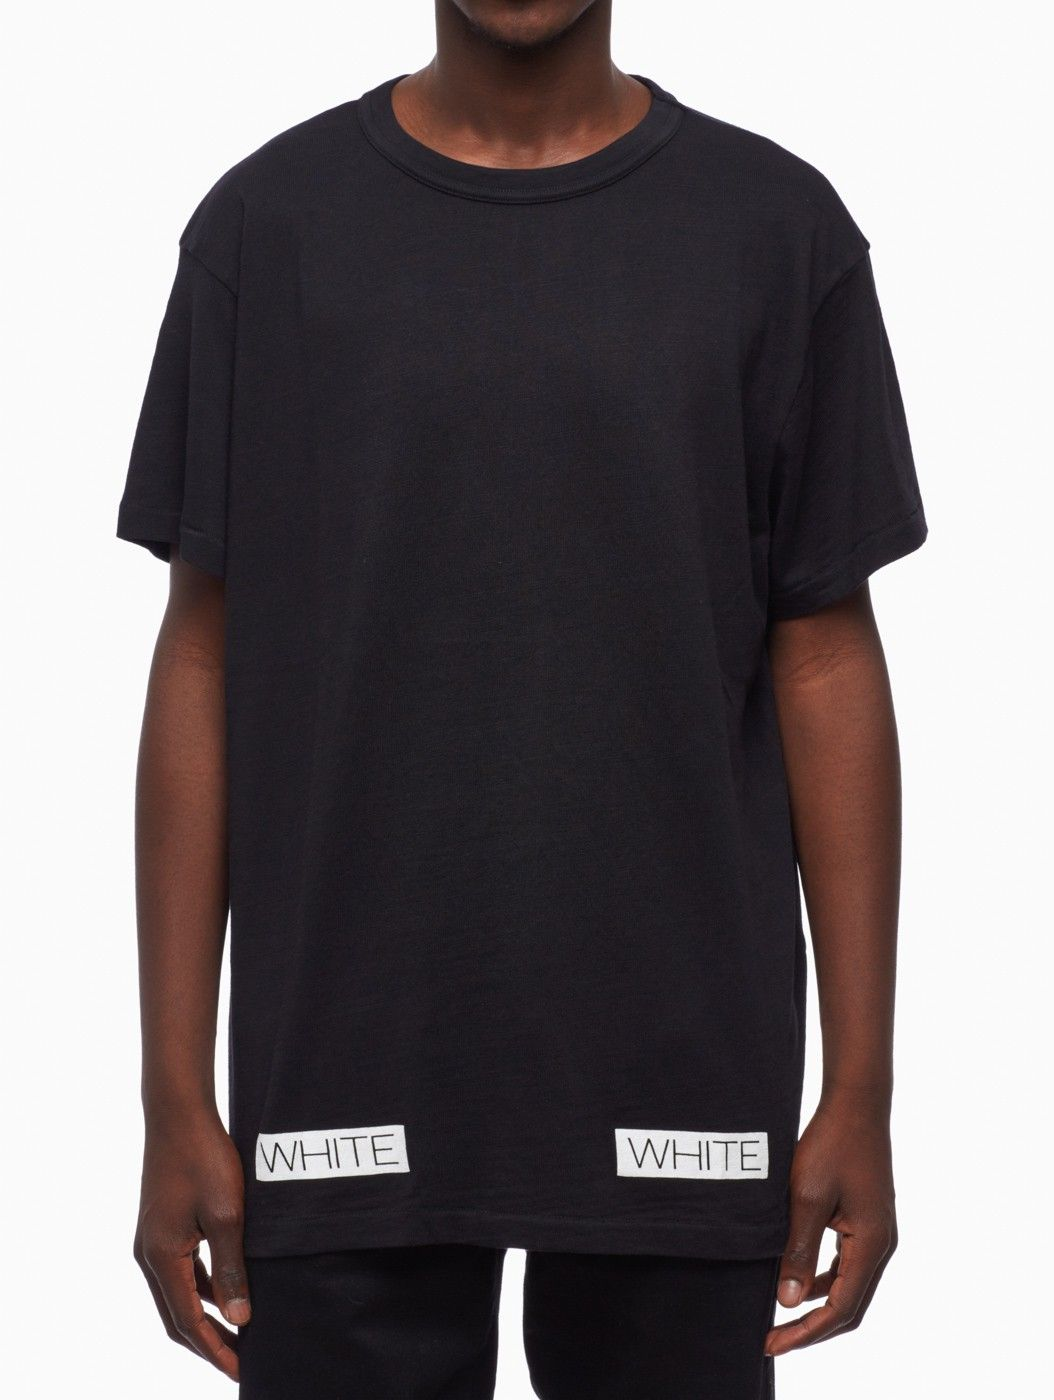 Black t shirt white collar - Find This Pin And More On Off White C O Virgil Abloh Blue Collar T Shirt